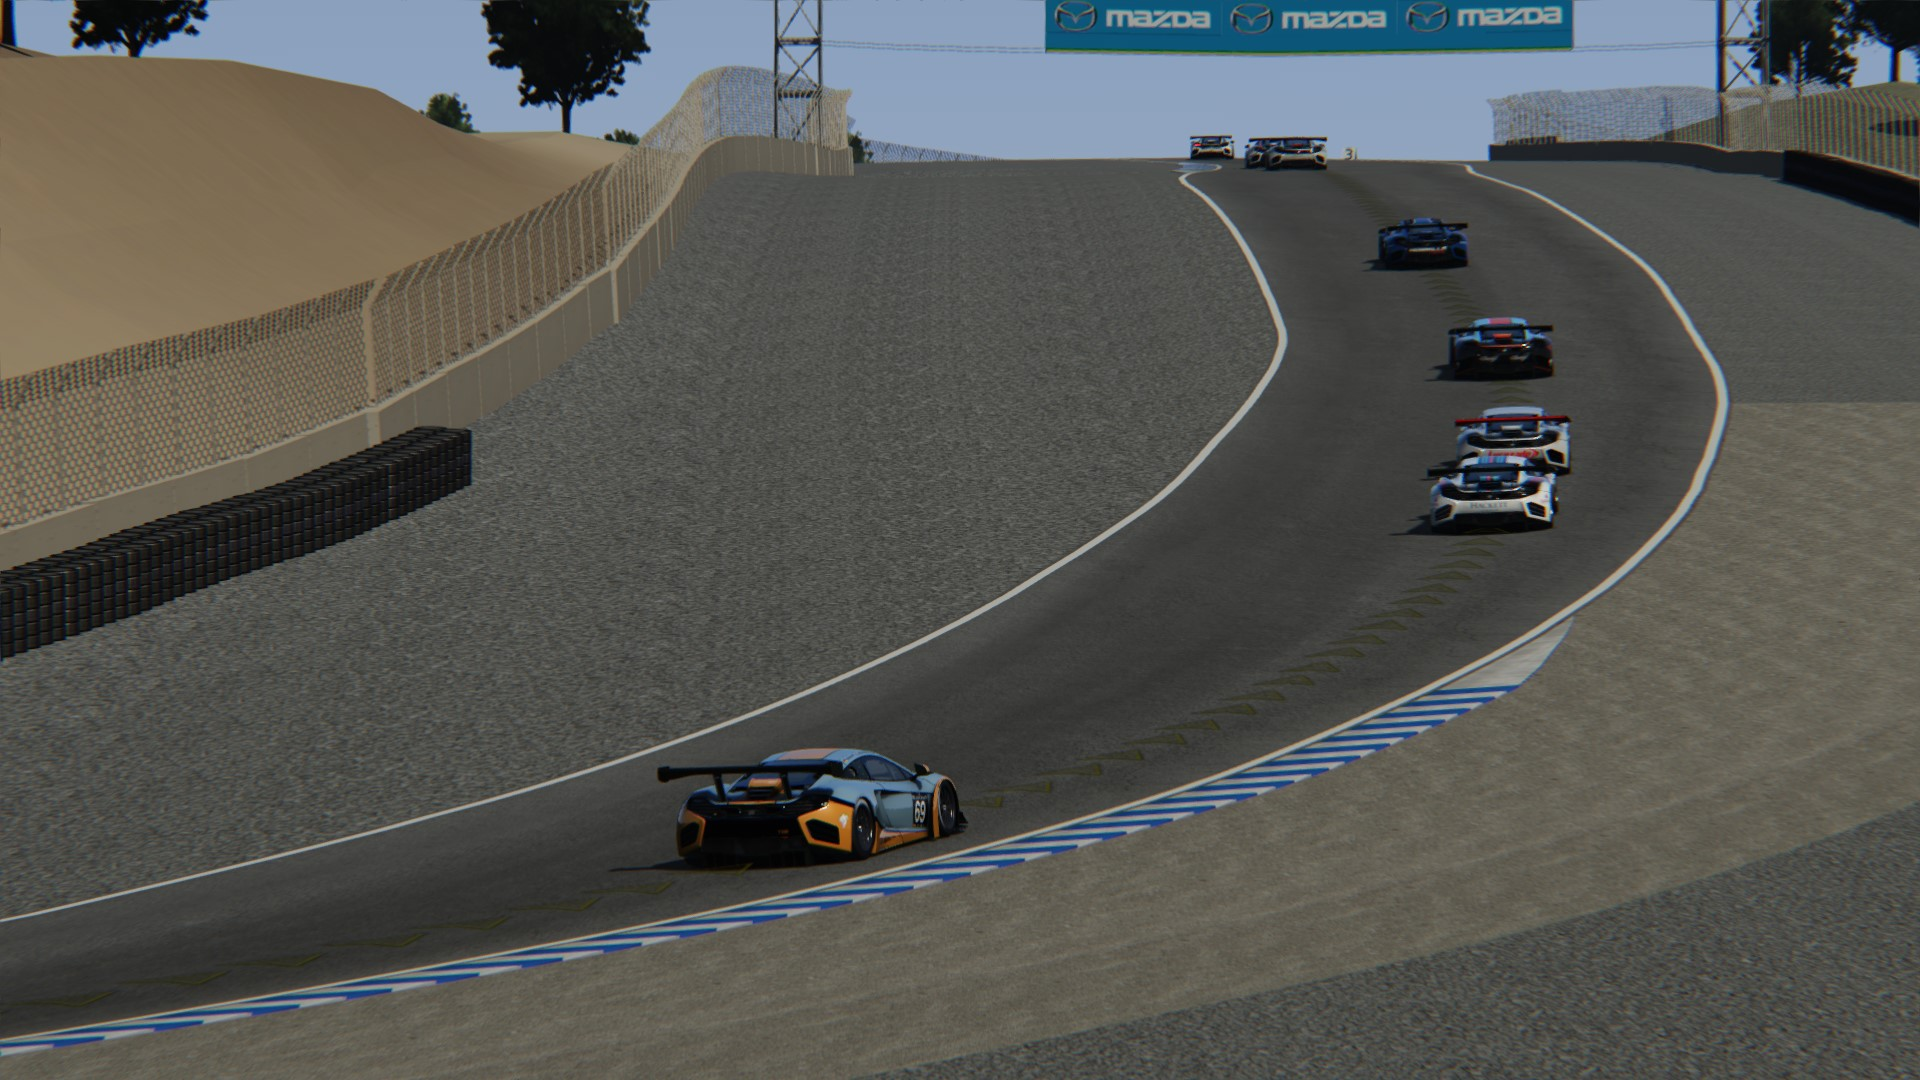 Screenshot_mclaren_mp412c_gt3_bs_lagunaseca_29-5-116-16-47-38.jpg